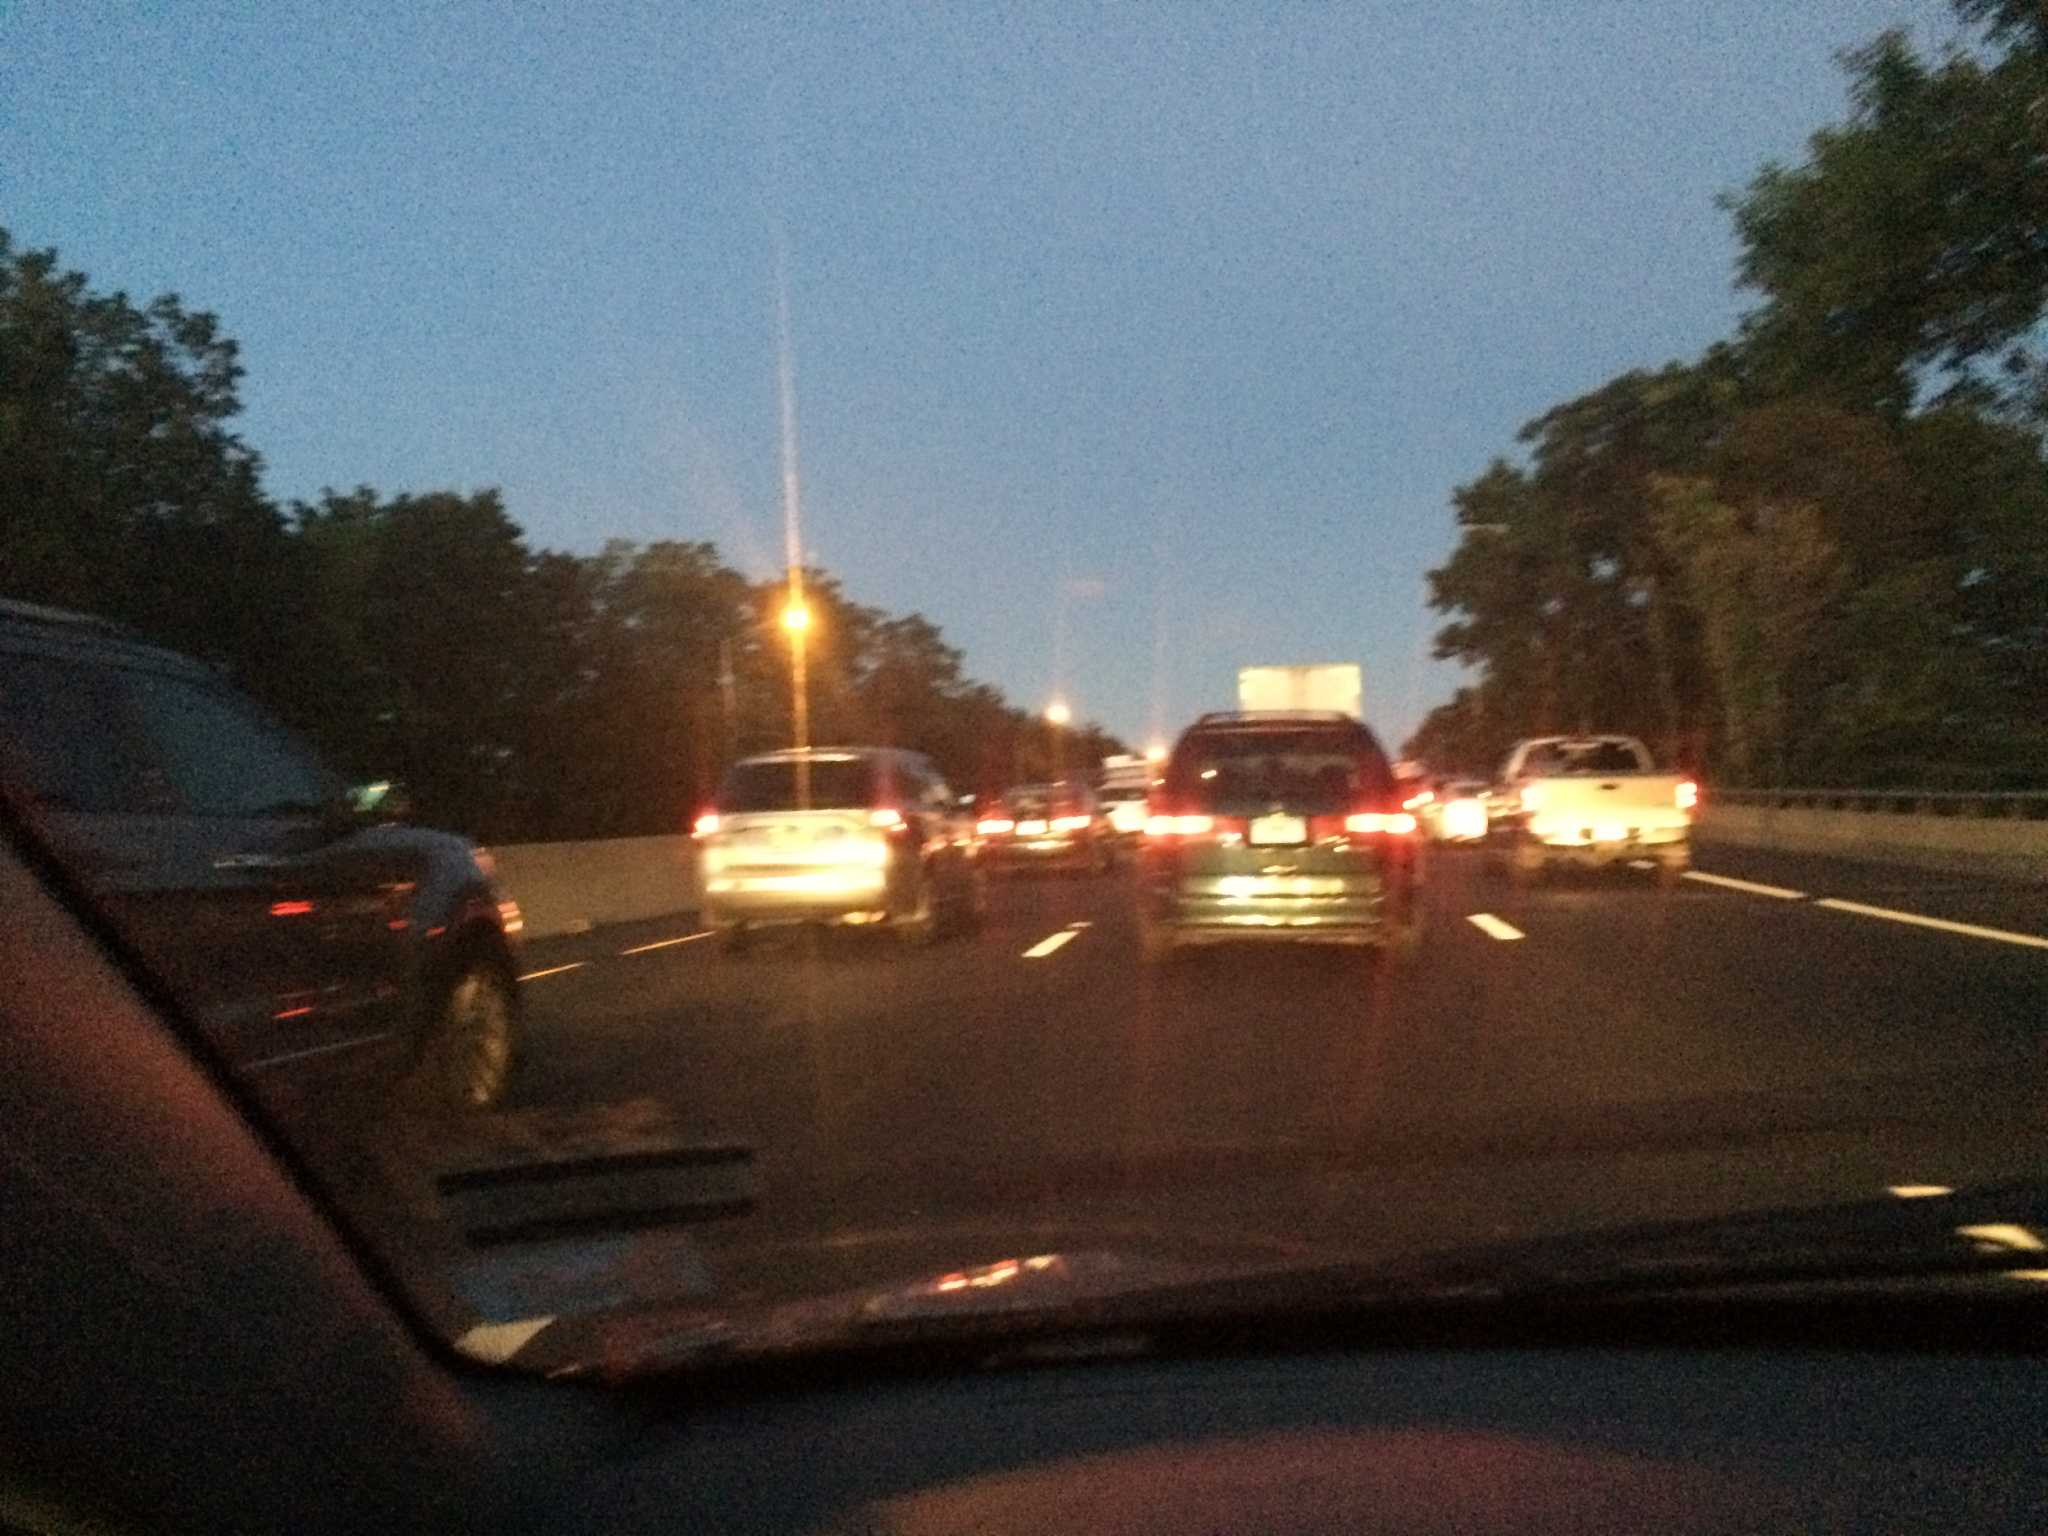 Crashes slow morning traffic - GreenwichTime